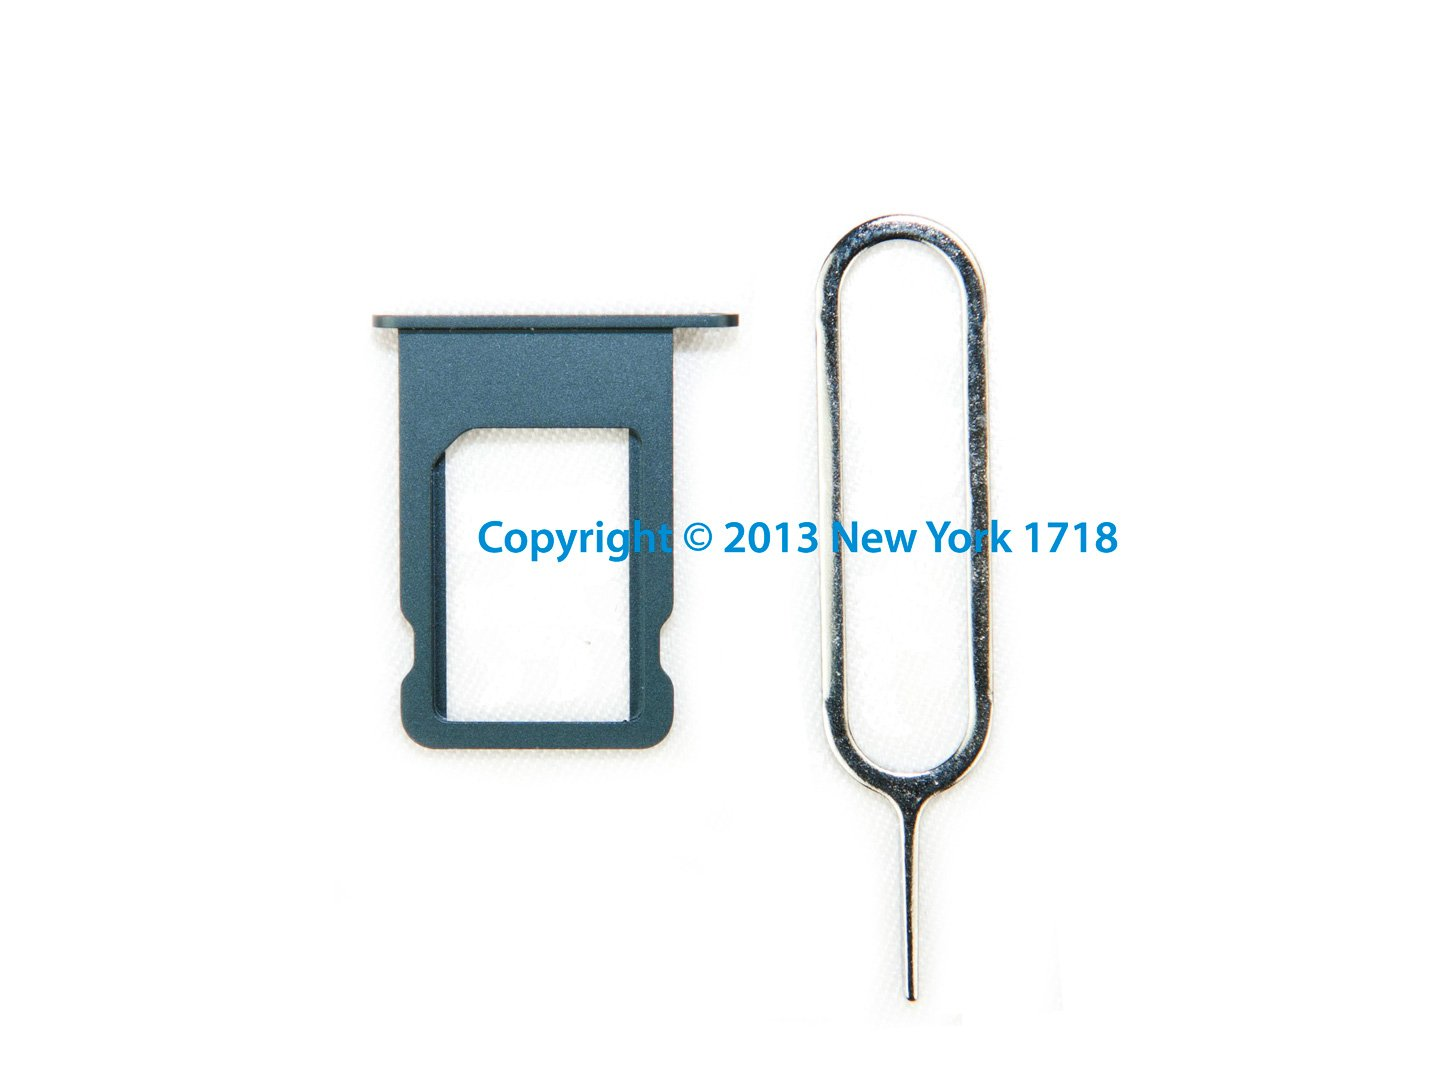 New Original iPhone 5 SIM Tray and Ejector Pin Combo (Black) - NY1718 by New York 1718